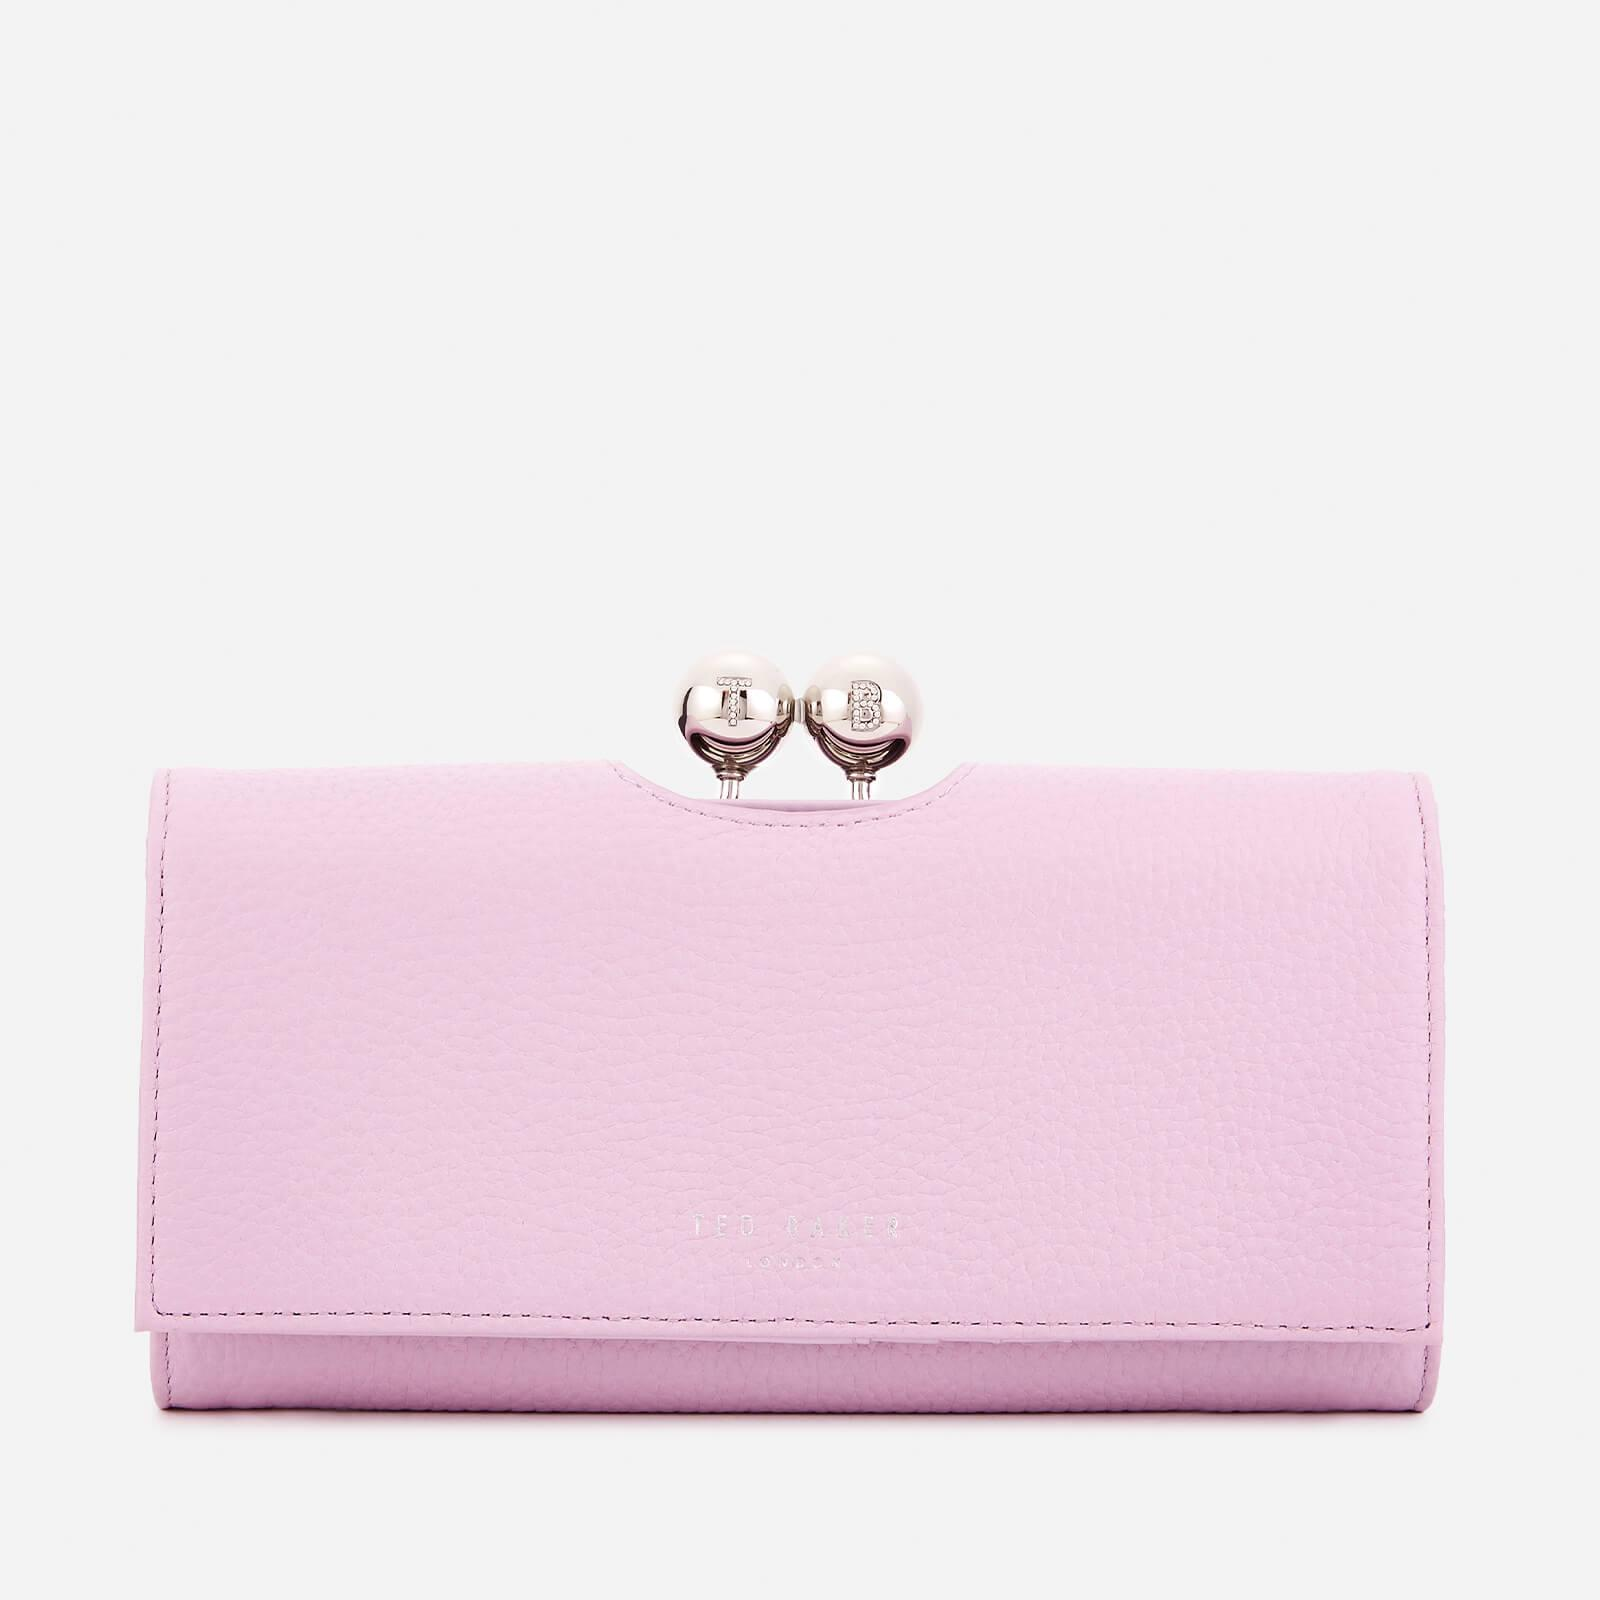 d18408a4f897 Lyst - Ted Baker Josiey Tb Pave Bobble Matinee Purse in Pink